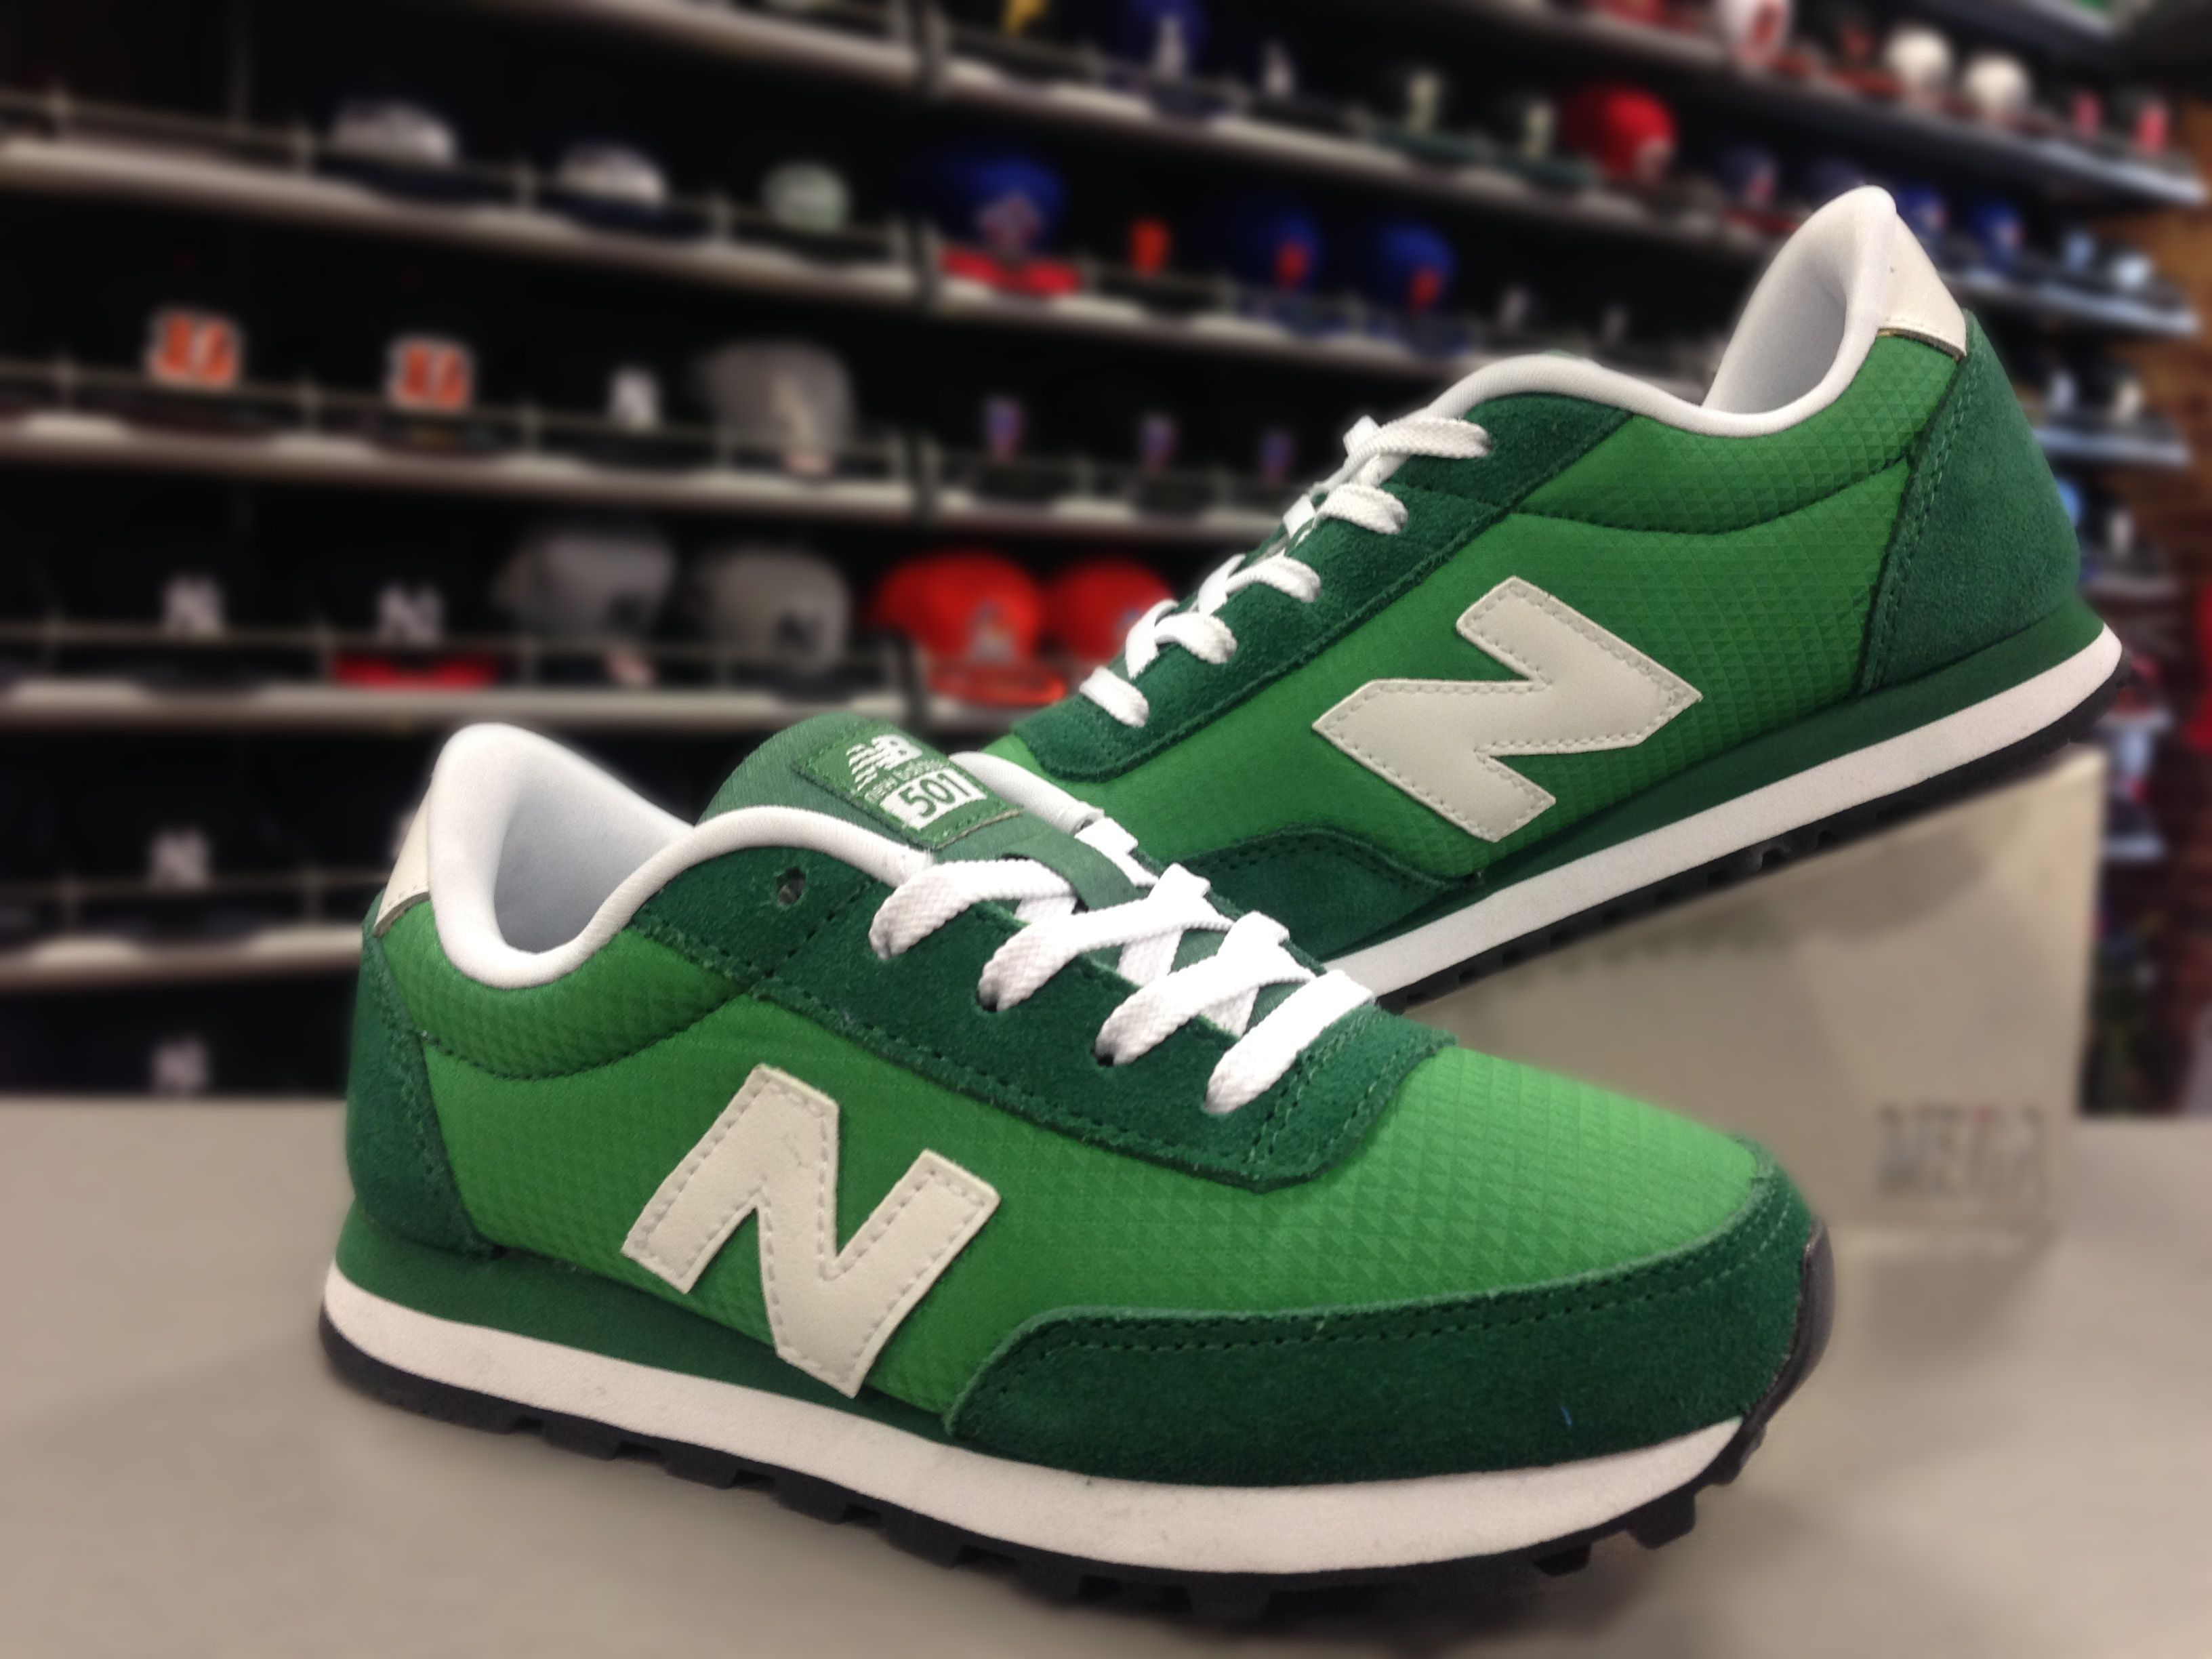 Image result for new balance 501 green